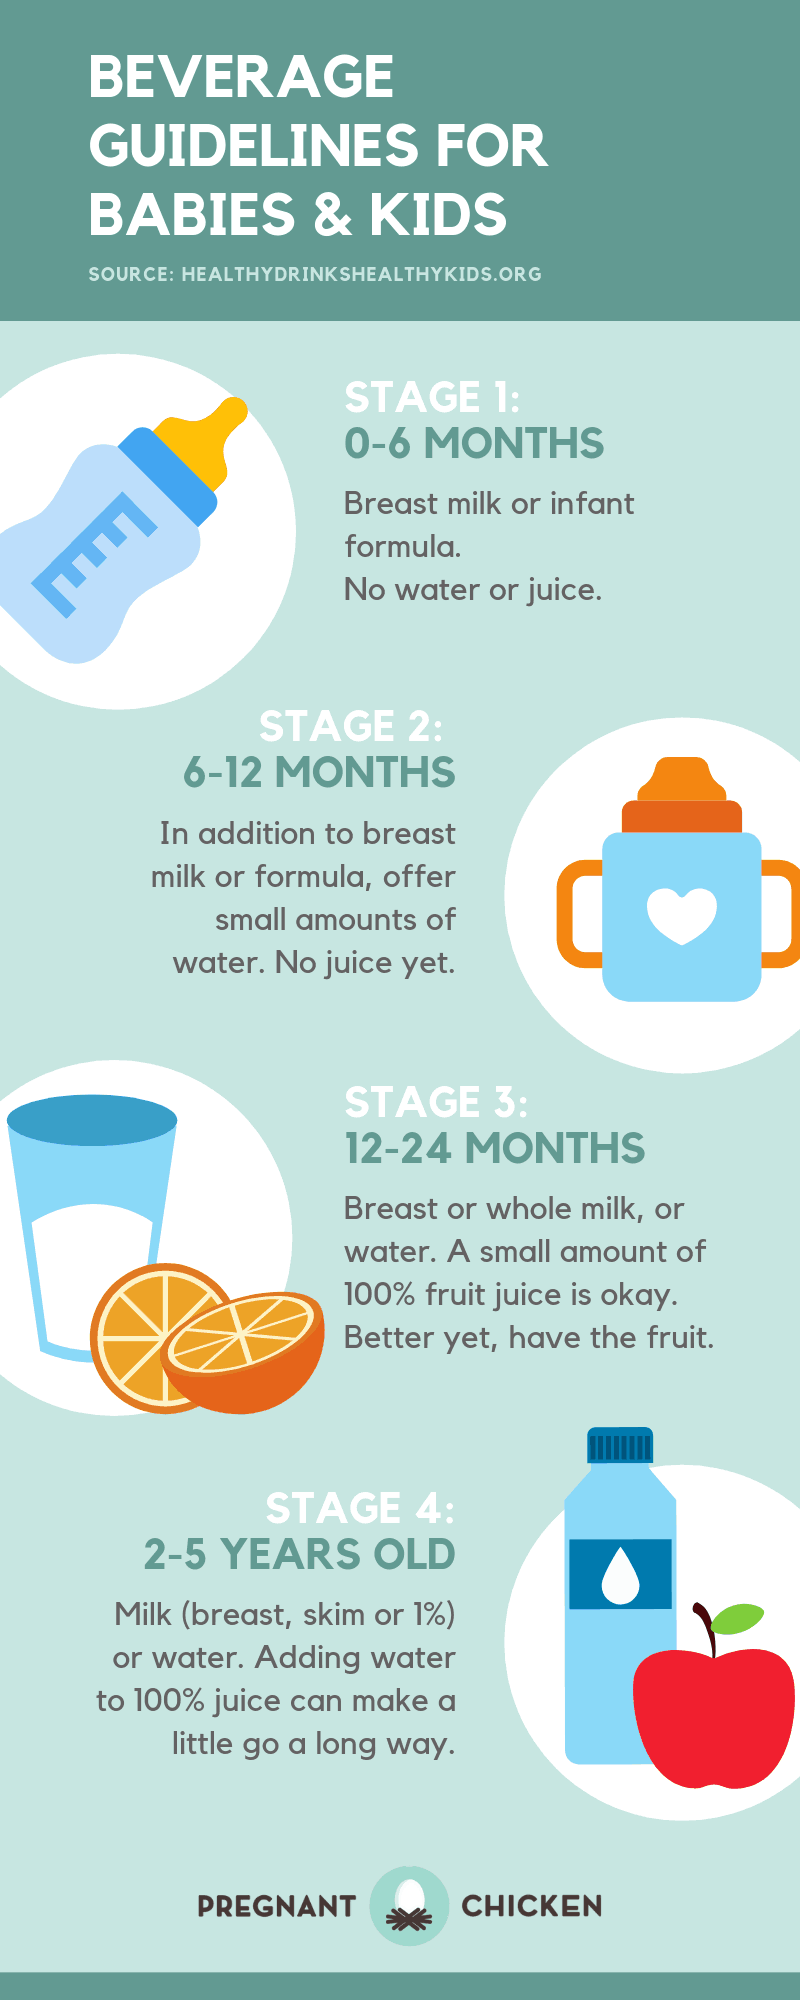 Beverage Guidelines for Babies and Kids